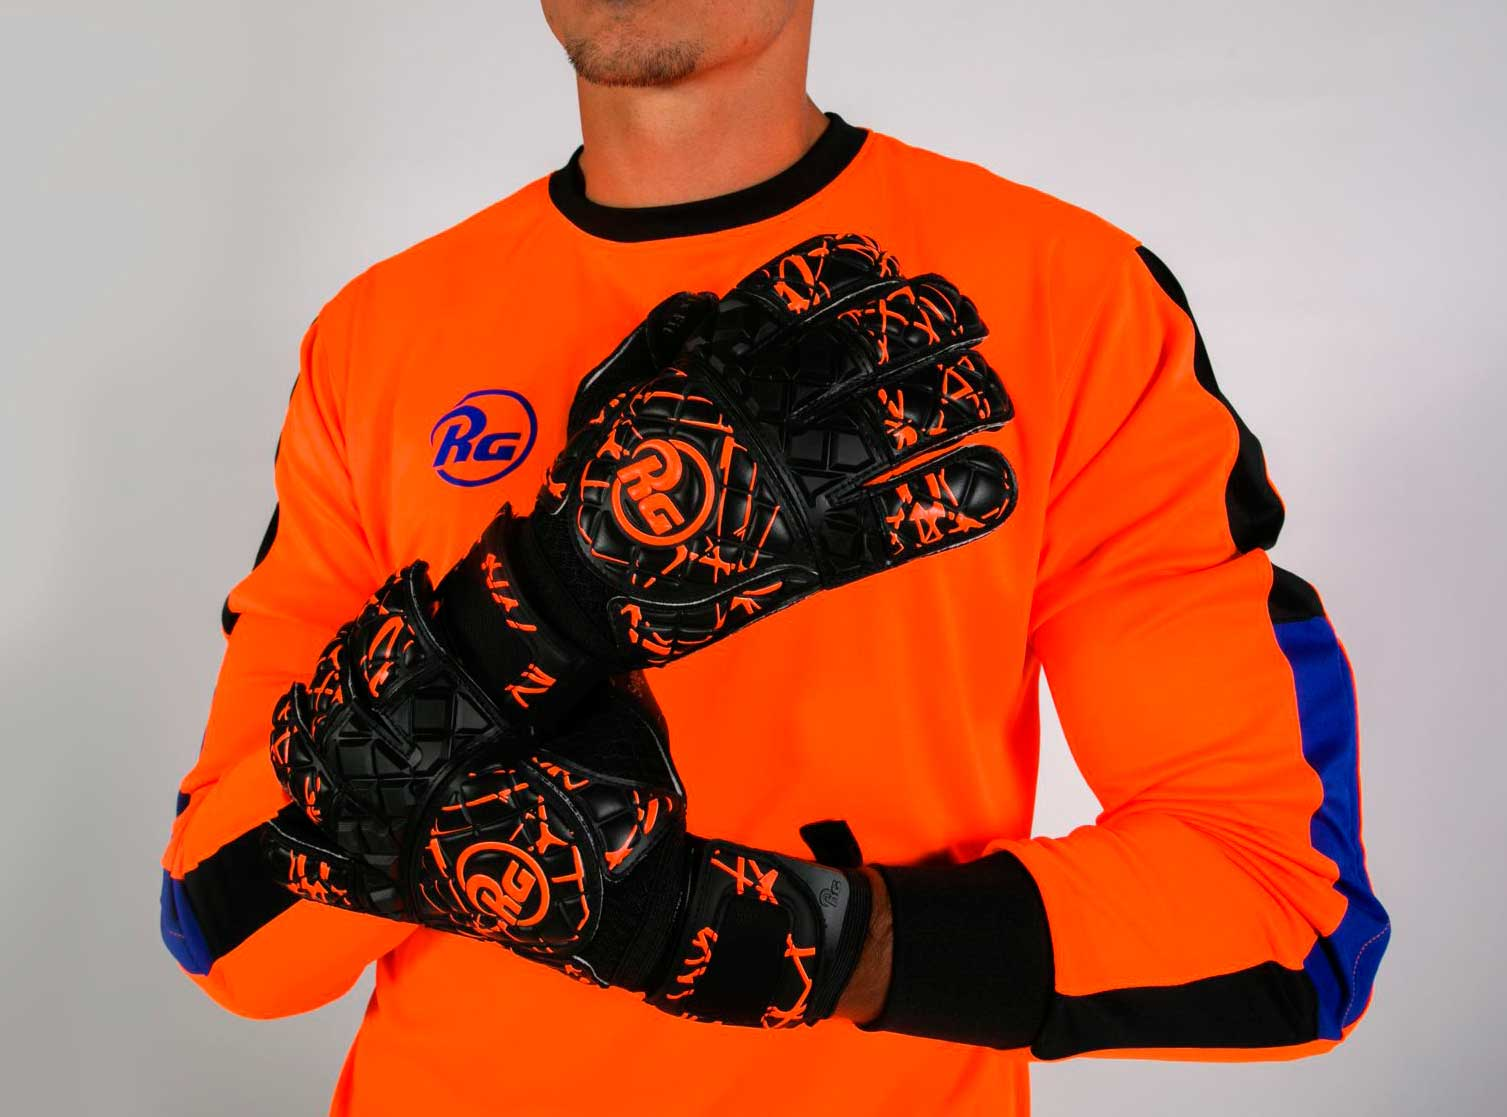 Gants de gardien de but Snaga orange